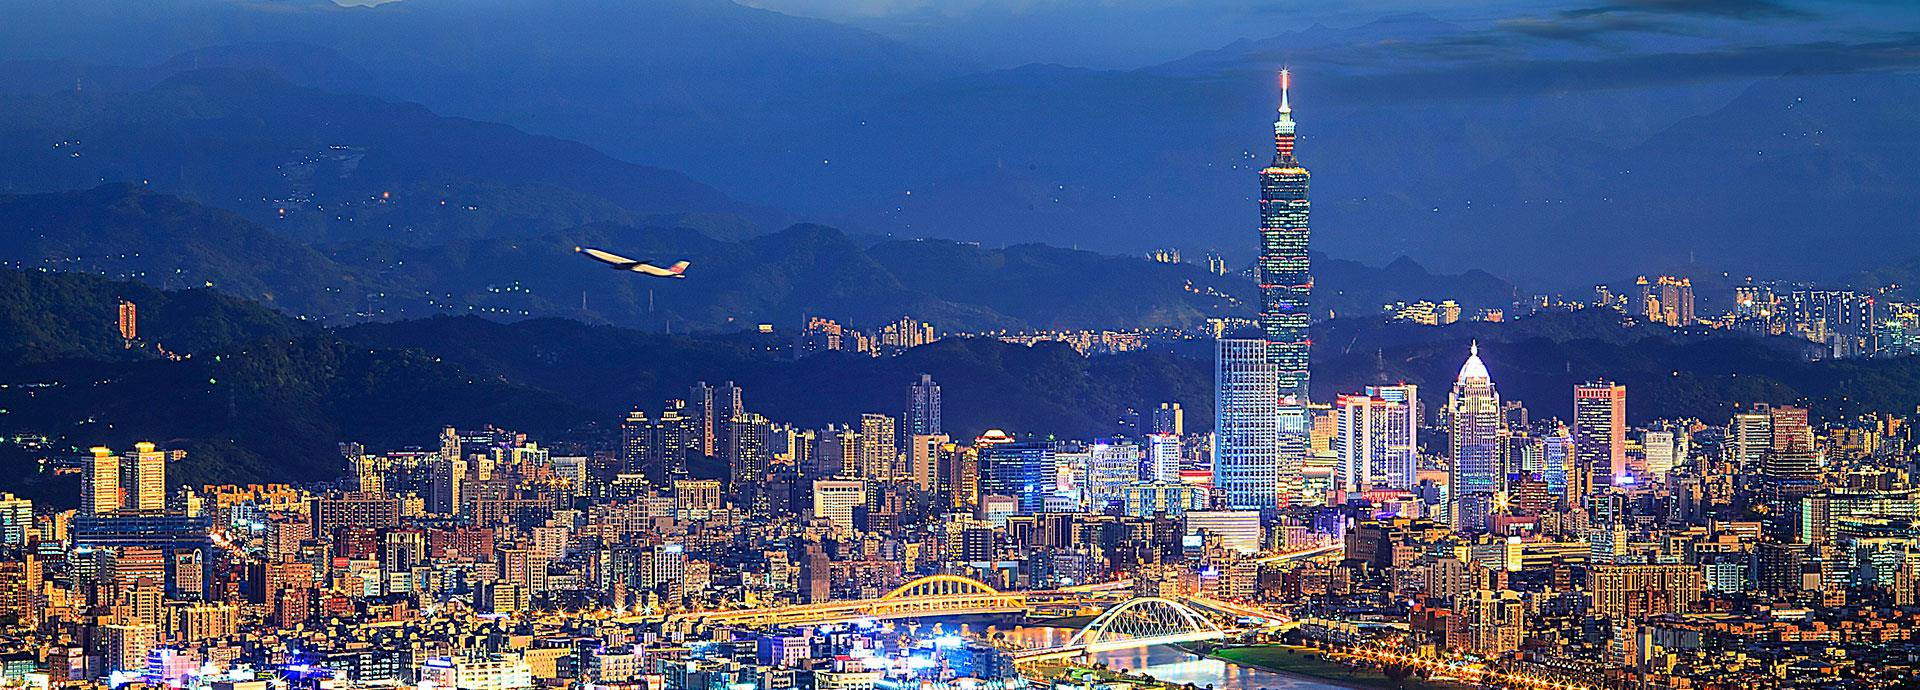 The optimal path for greater use of renewable energy in Taiwan